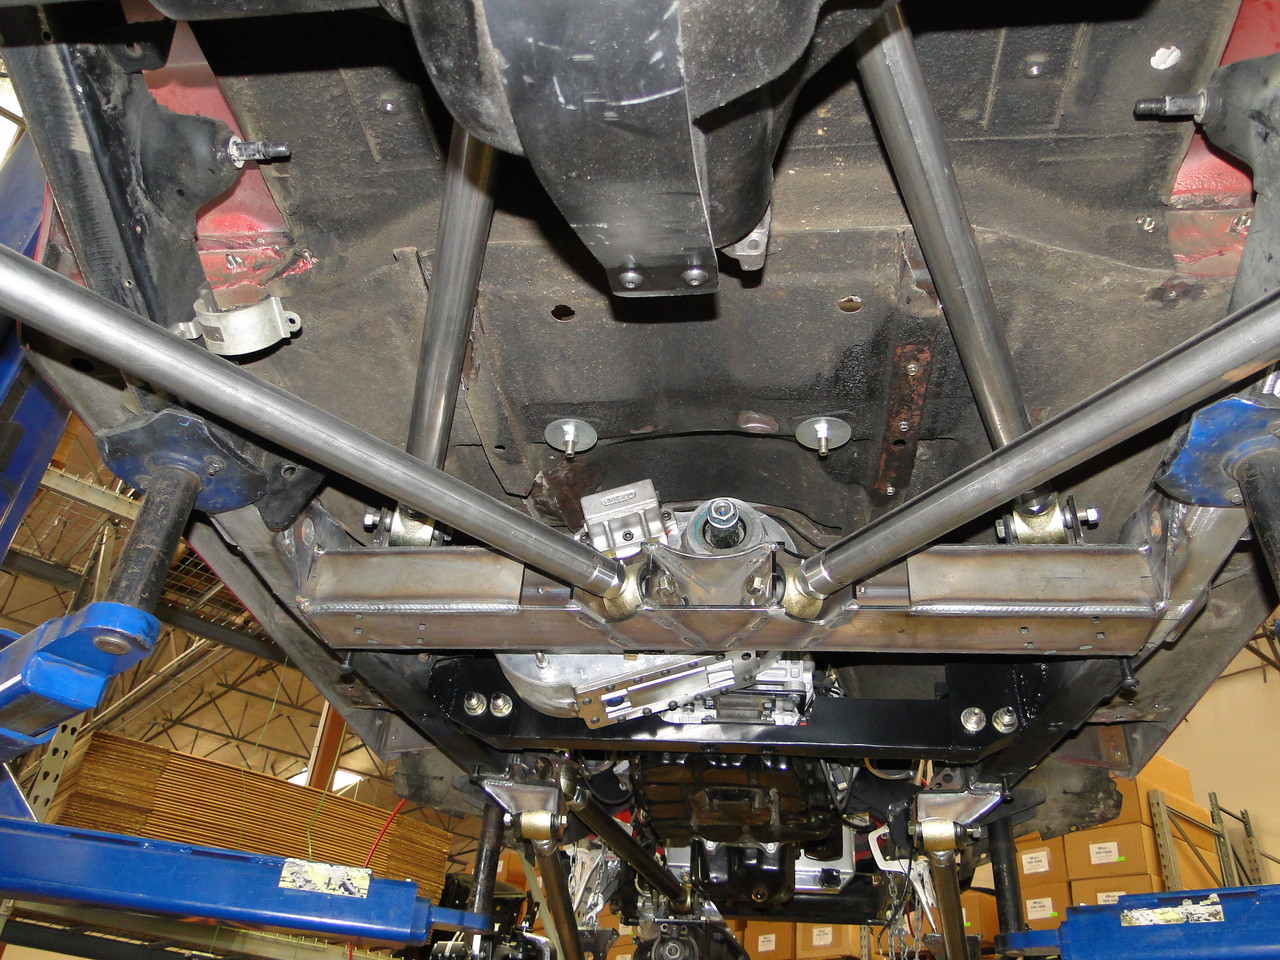 Johnny  joints on double triangulated rear suspension